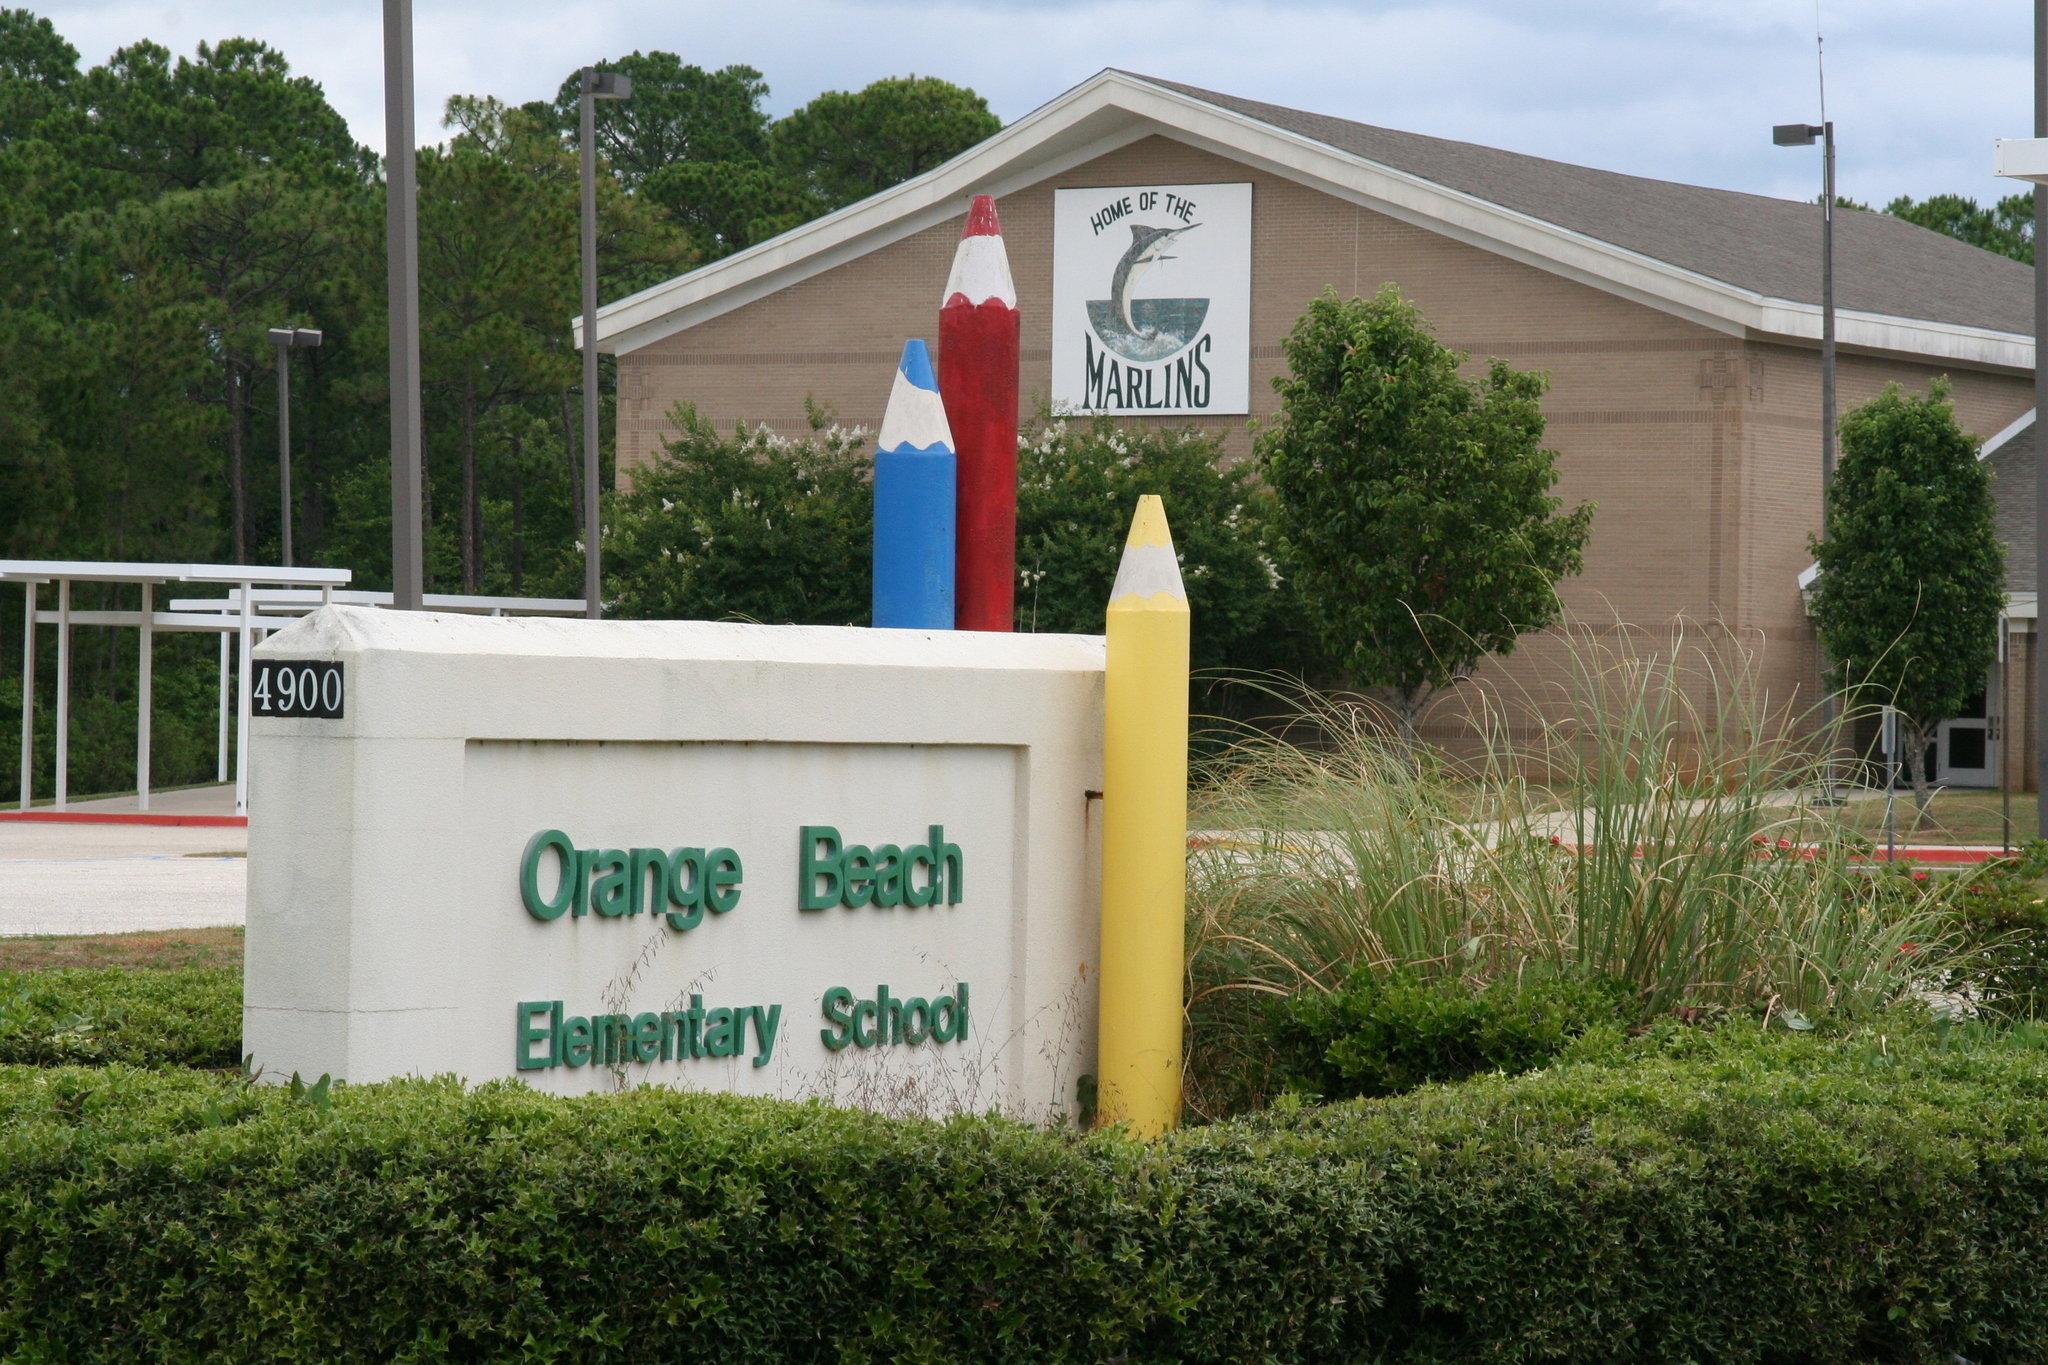 Orange Beach Elementary School